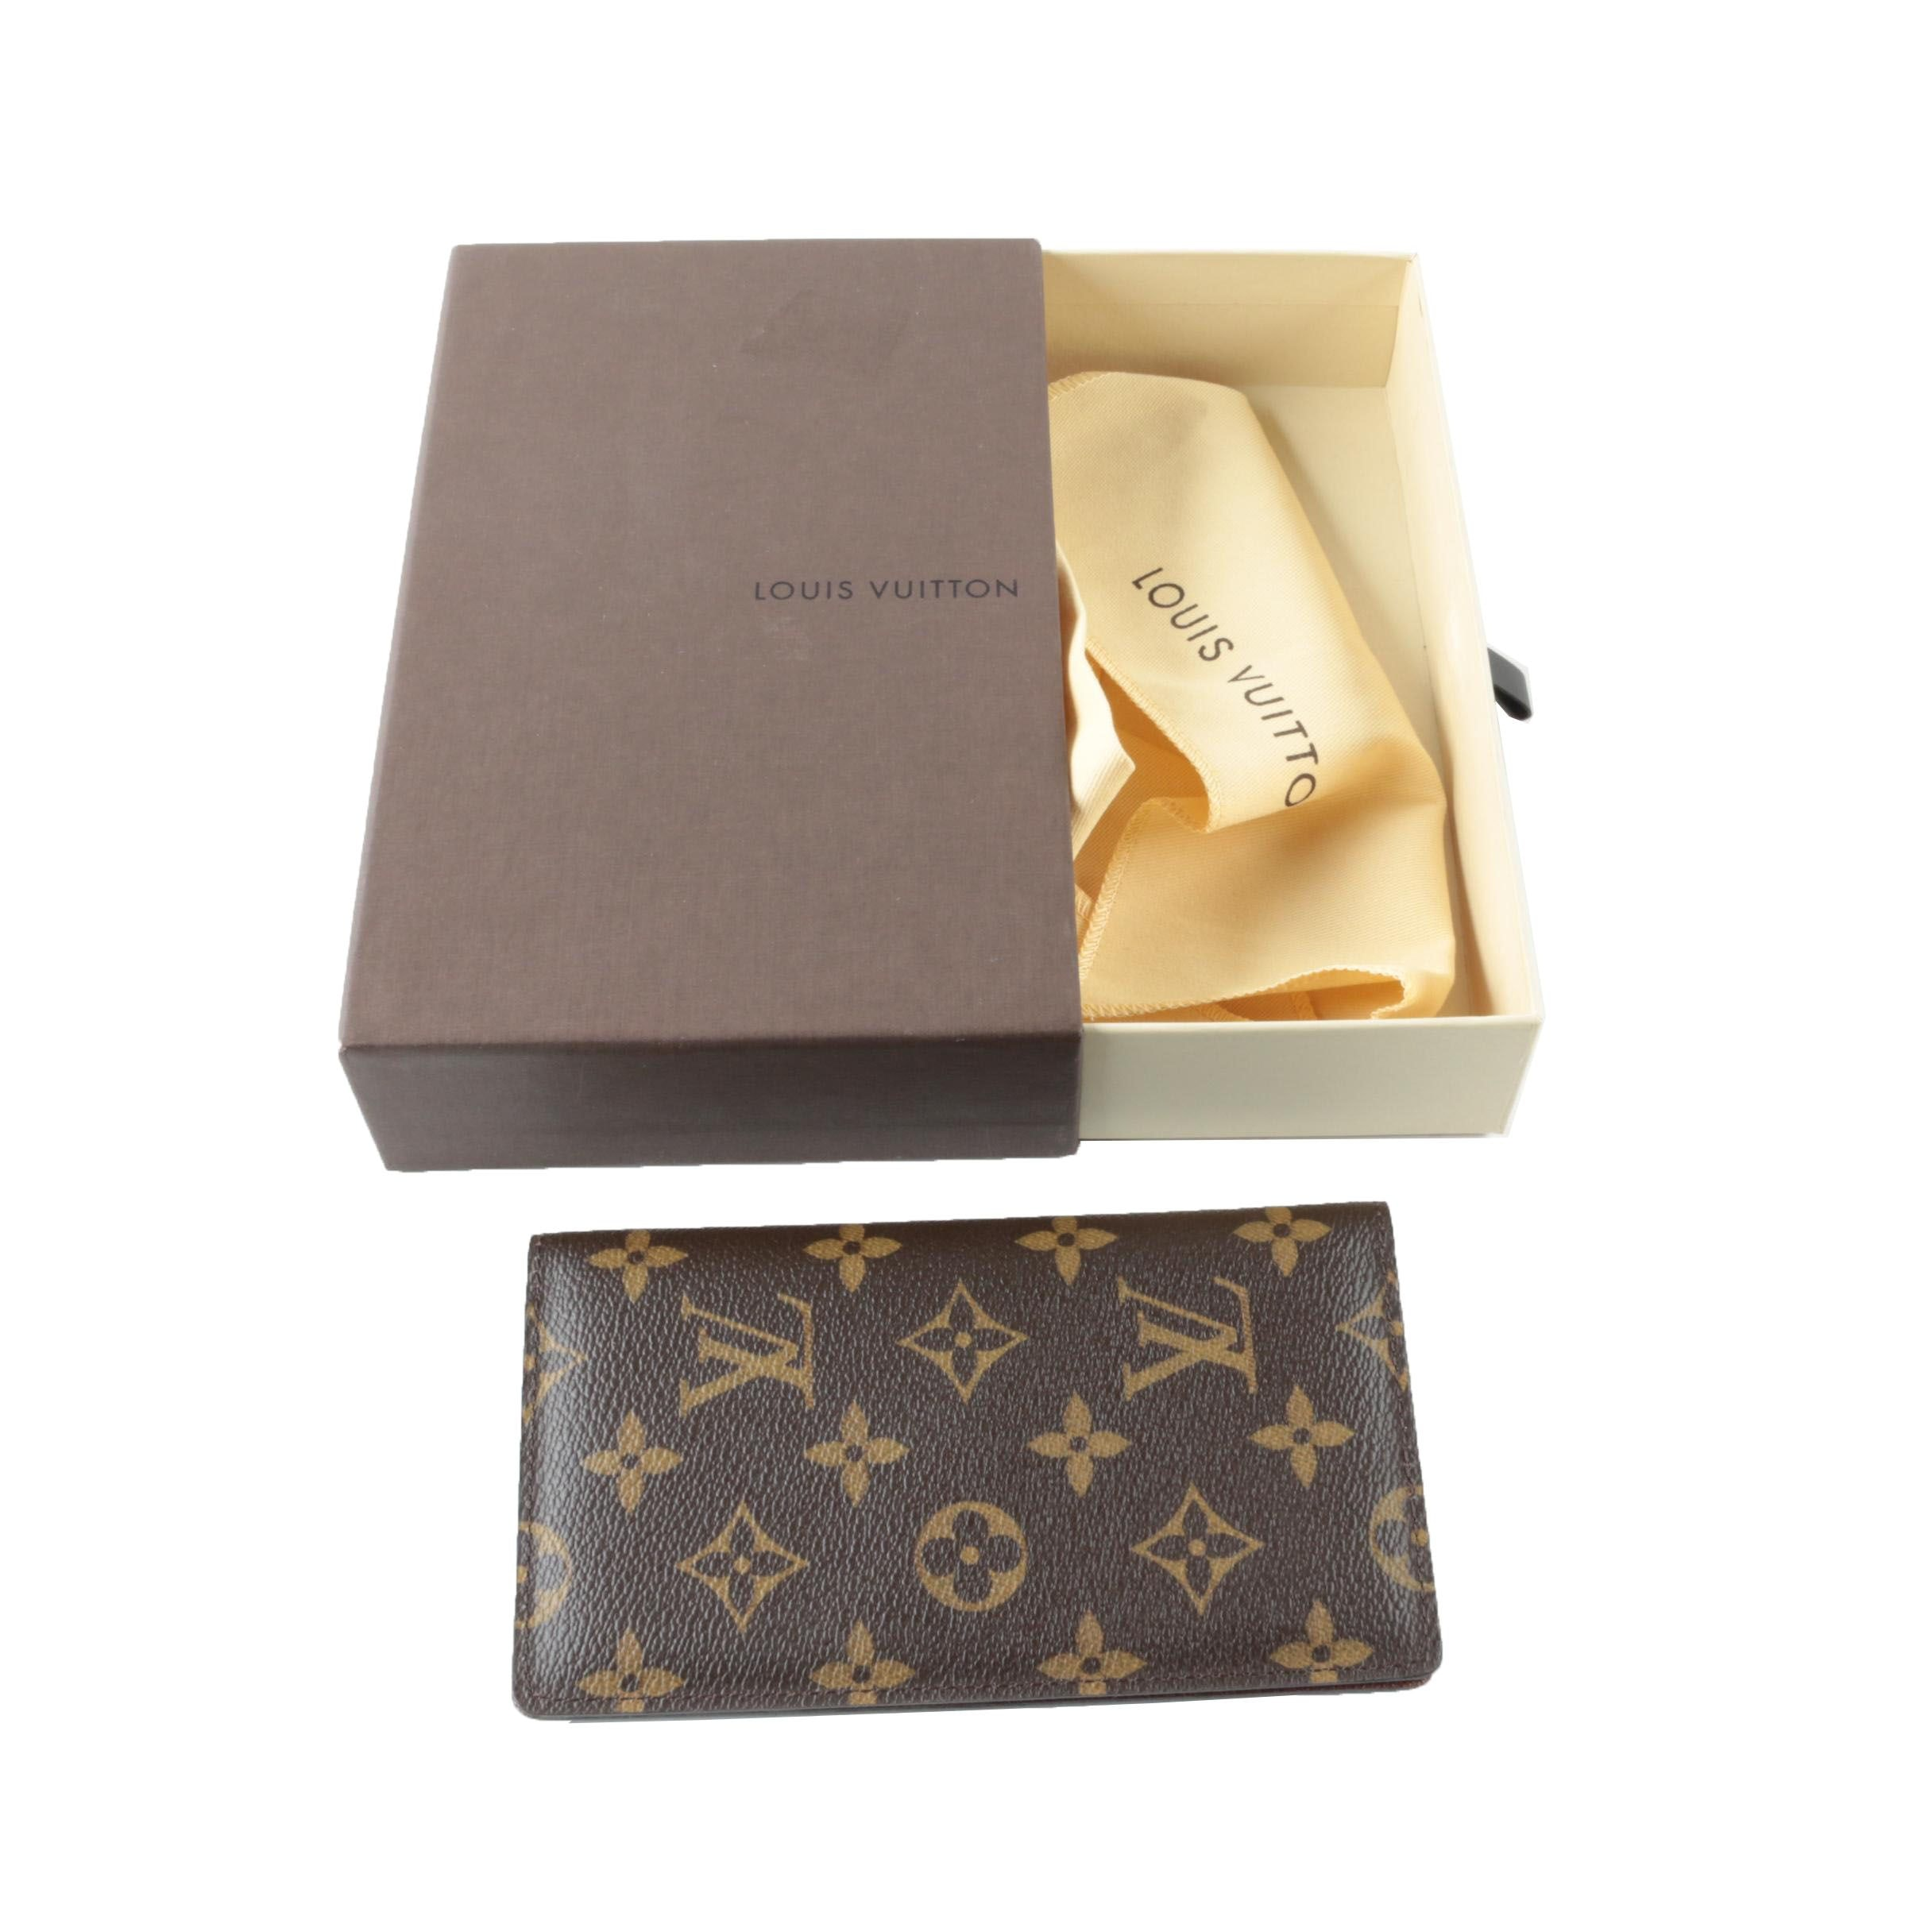 Louis Vuitton Monogram Canvas Pocket Agenda Cover